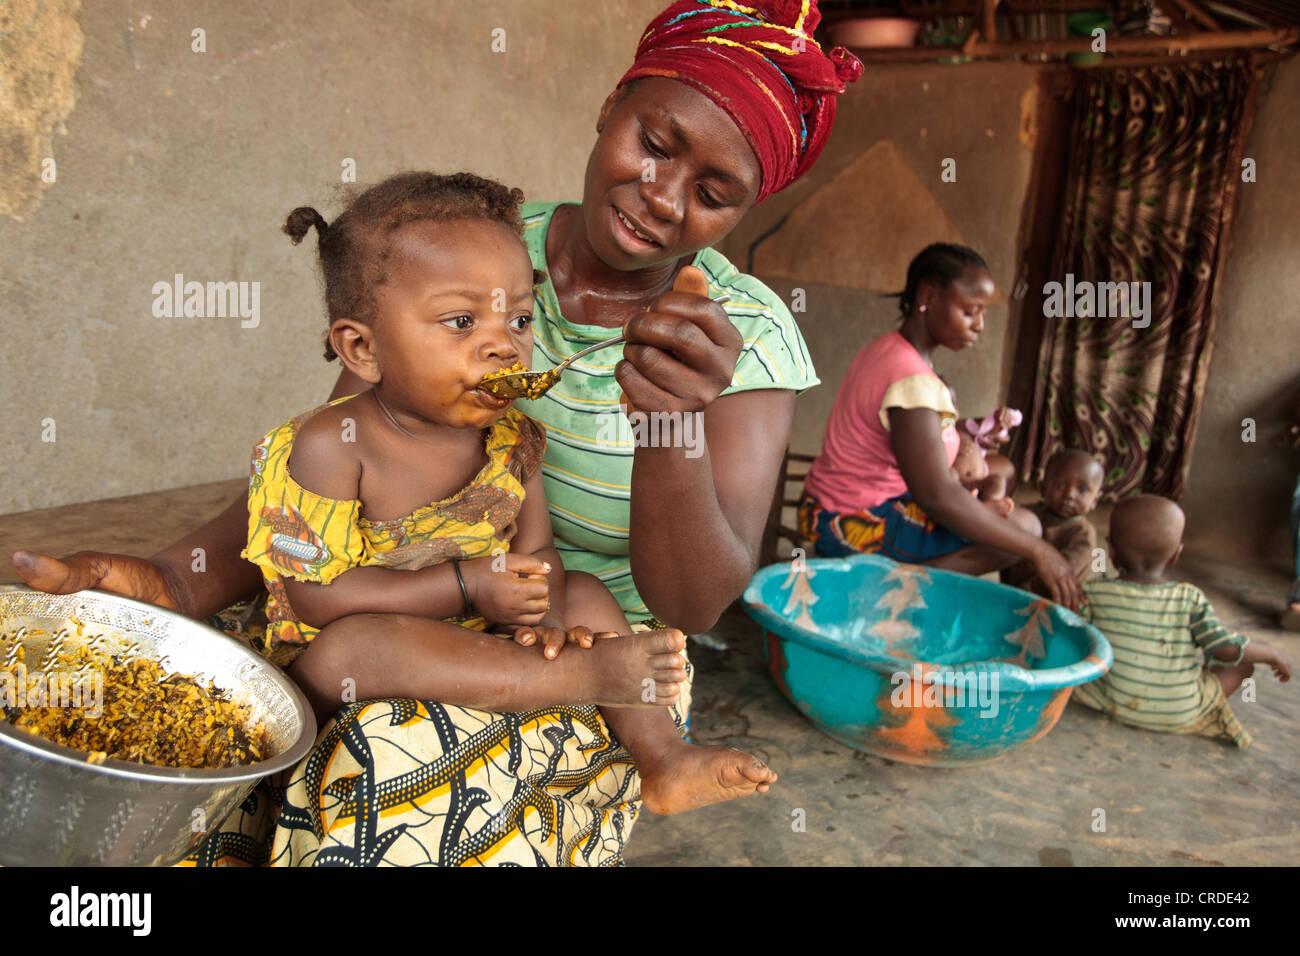 Jenneh Johnson, 31, feeds her daughter Jusu, 2, at home in the village of Julijuah, Bomi county, Liberia - Stock Image